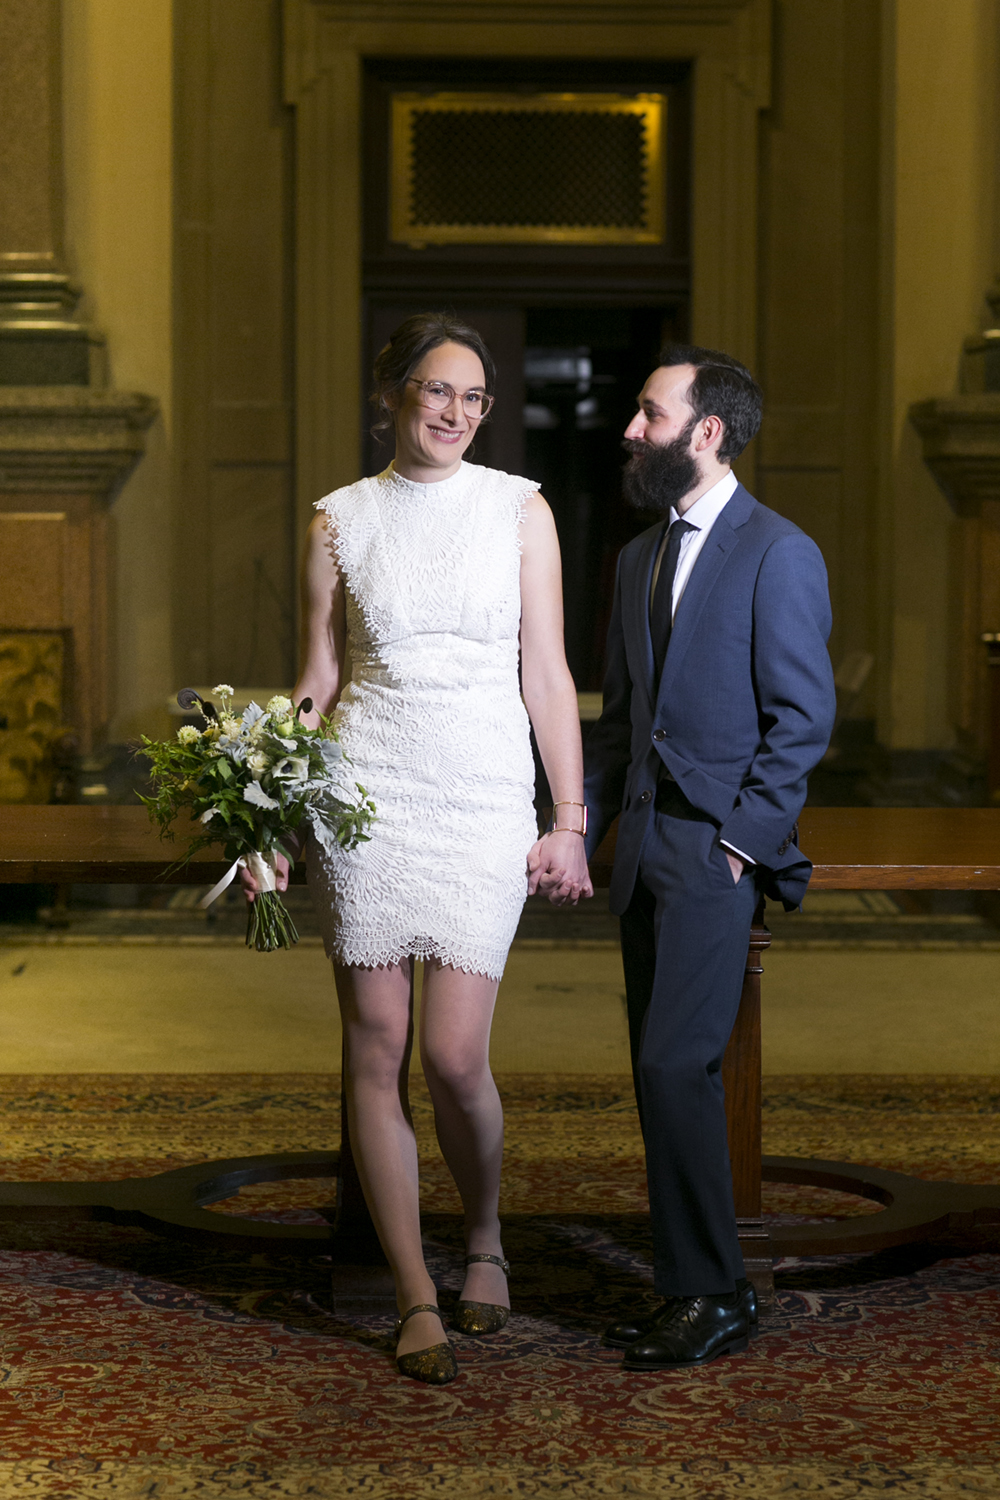 Heidi_Roland_Photography_Philadelphia_City_Hall_Wedding_Chloe_Max_068 (2).jpg